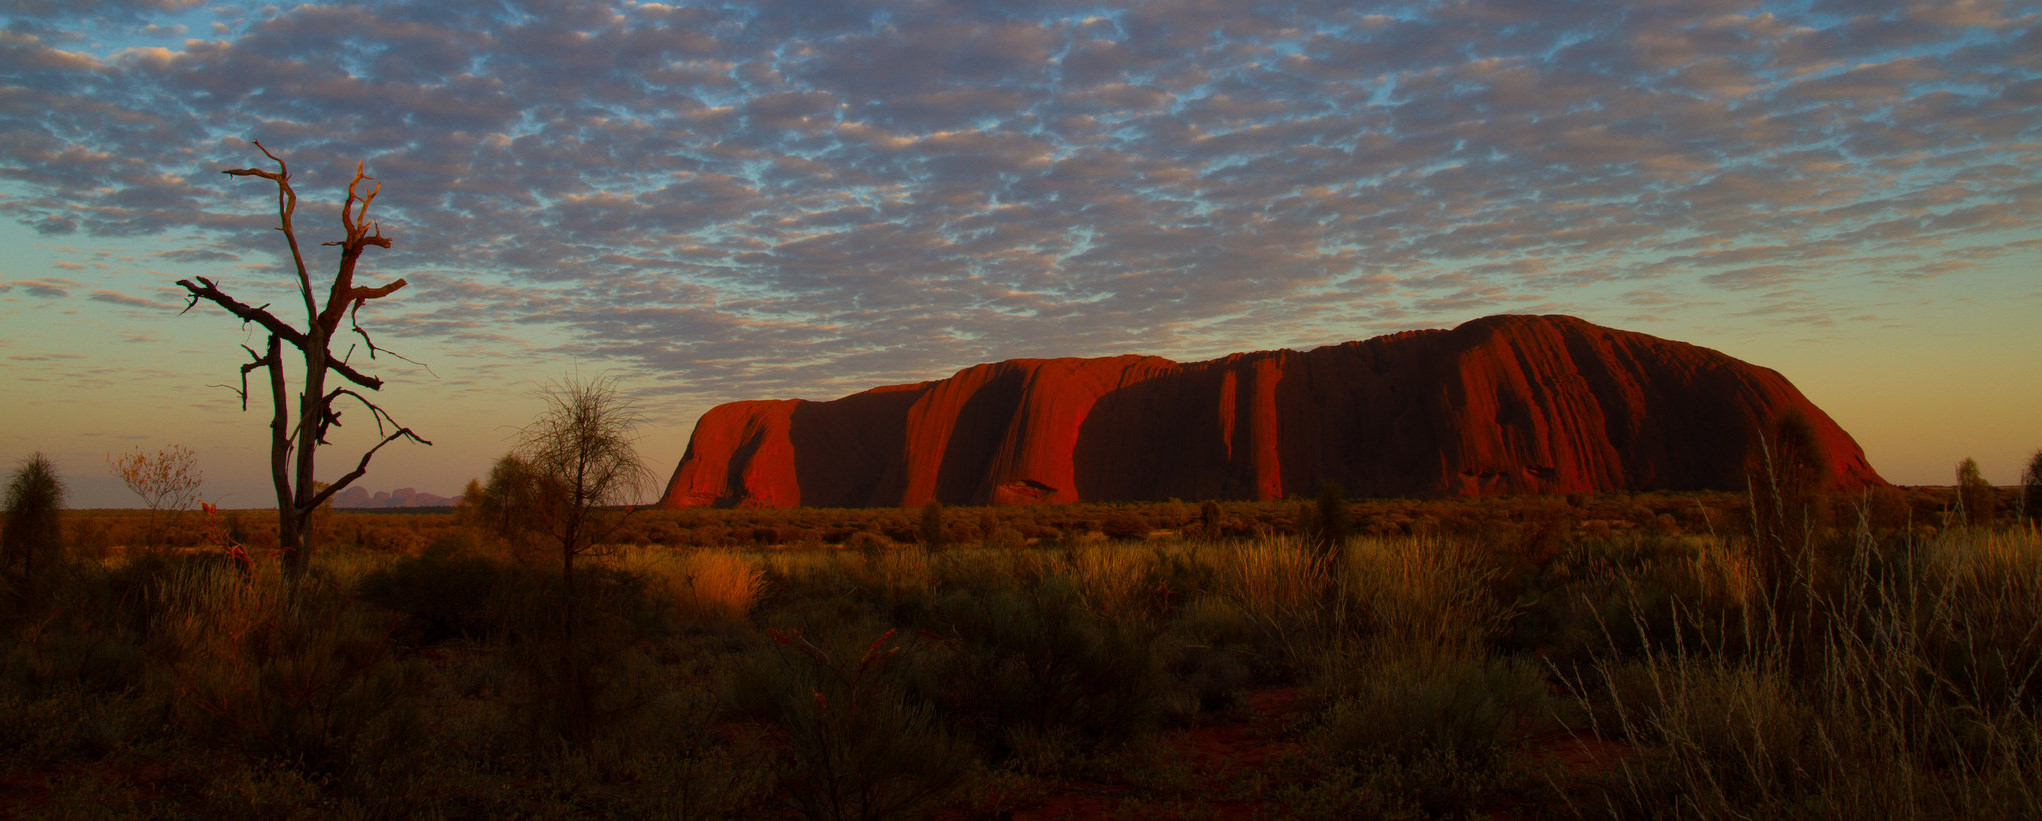 Uluru at sunset, central Australia. (Photo: Tchami/Flickr)